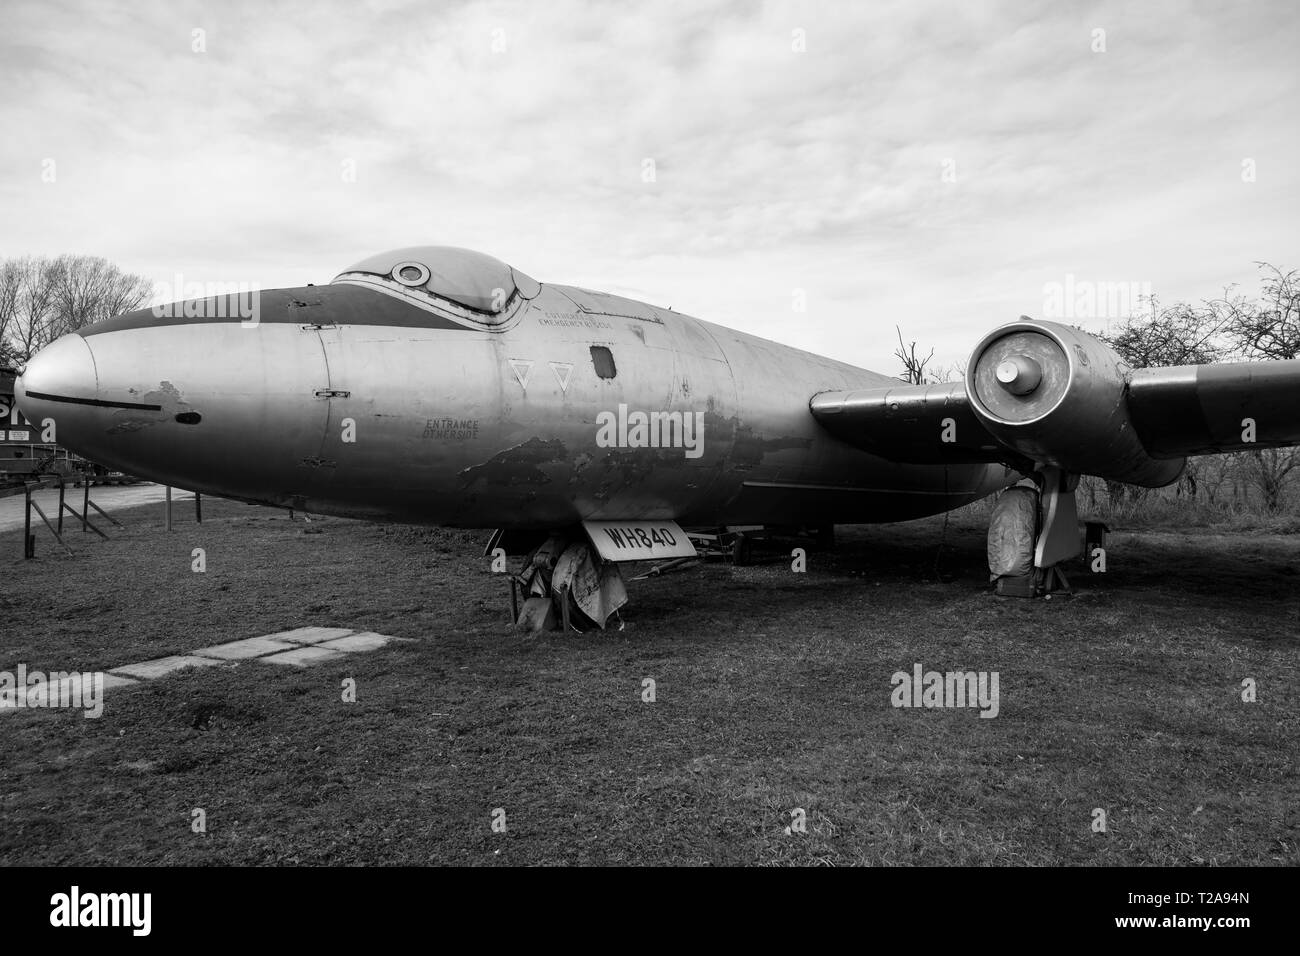 English Electric Canberra T.4 Cold War era bomber - Stock Image